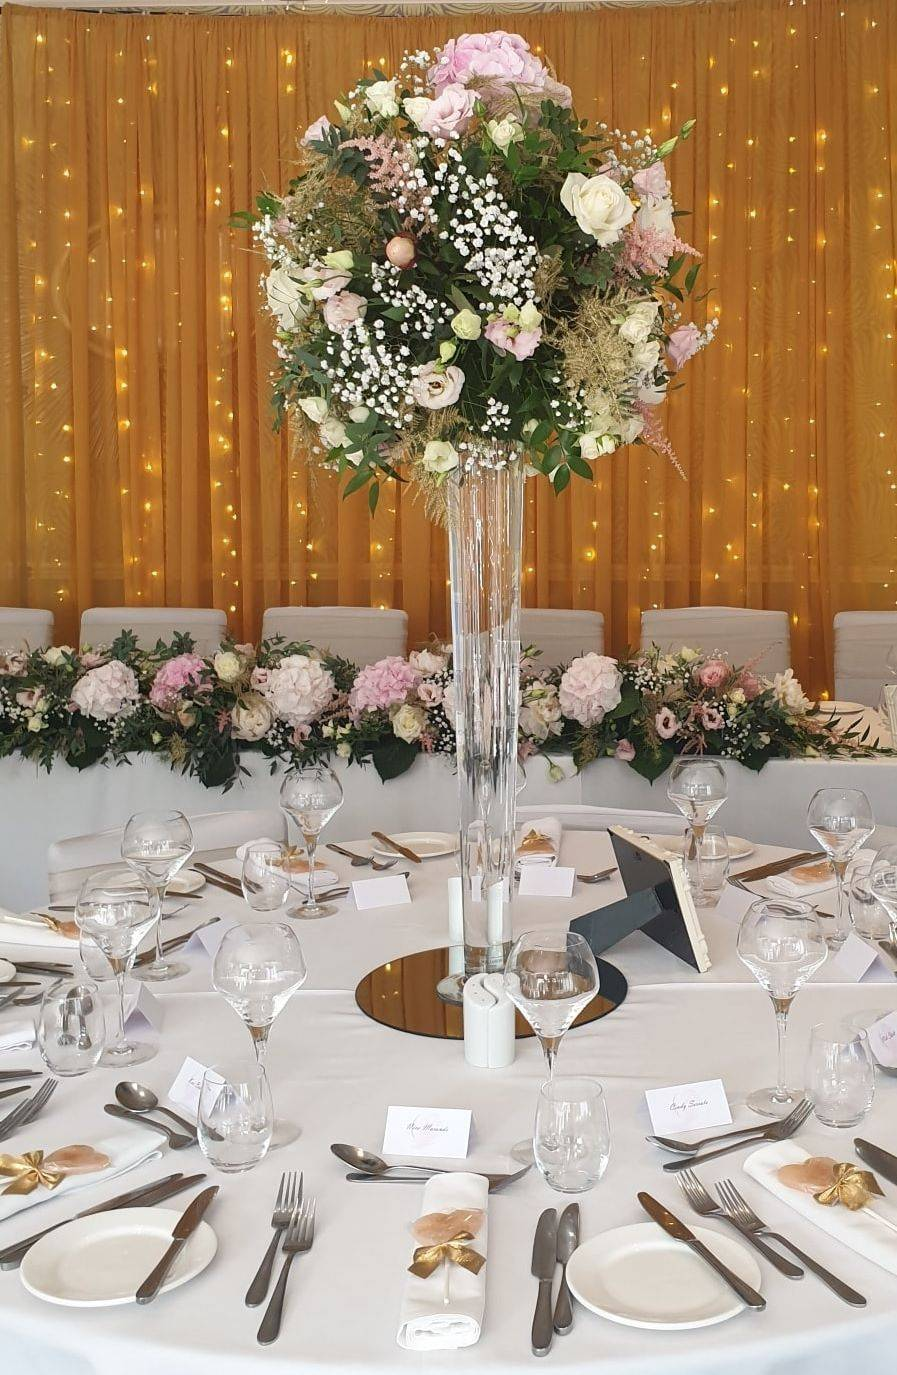 Wedding reception decor at The Green House Hotel Bournemouth